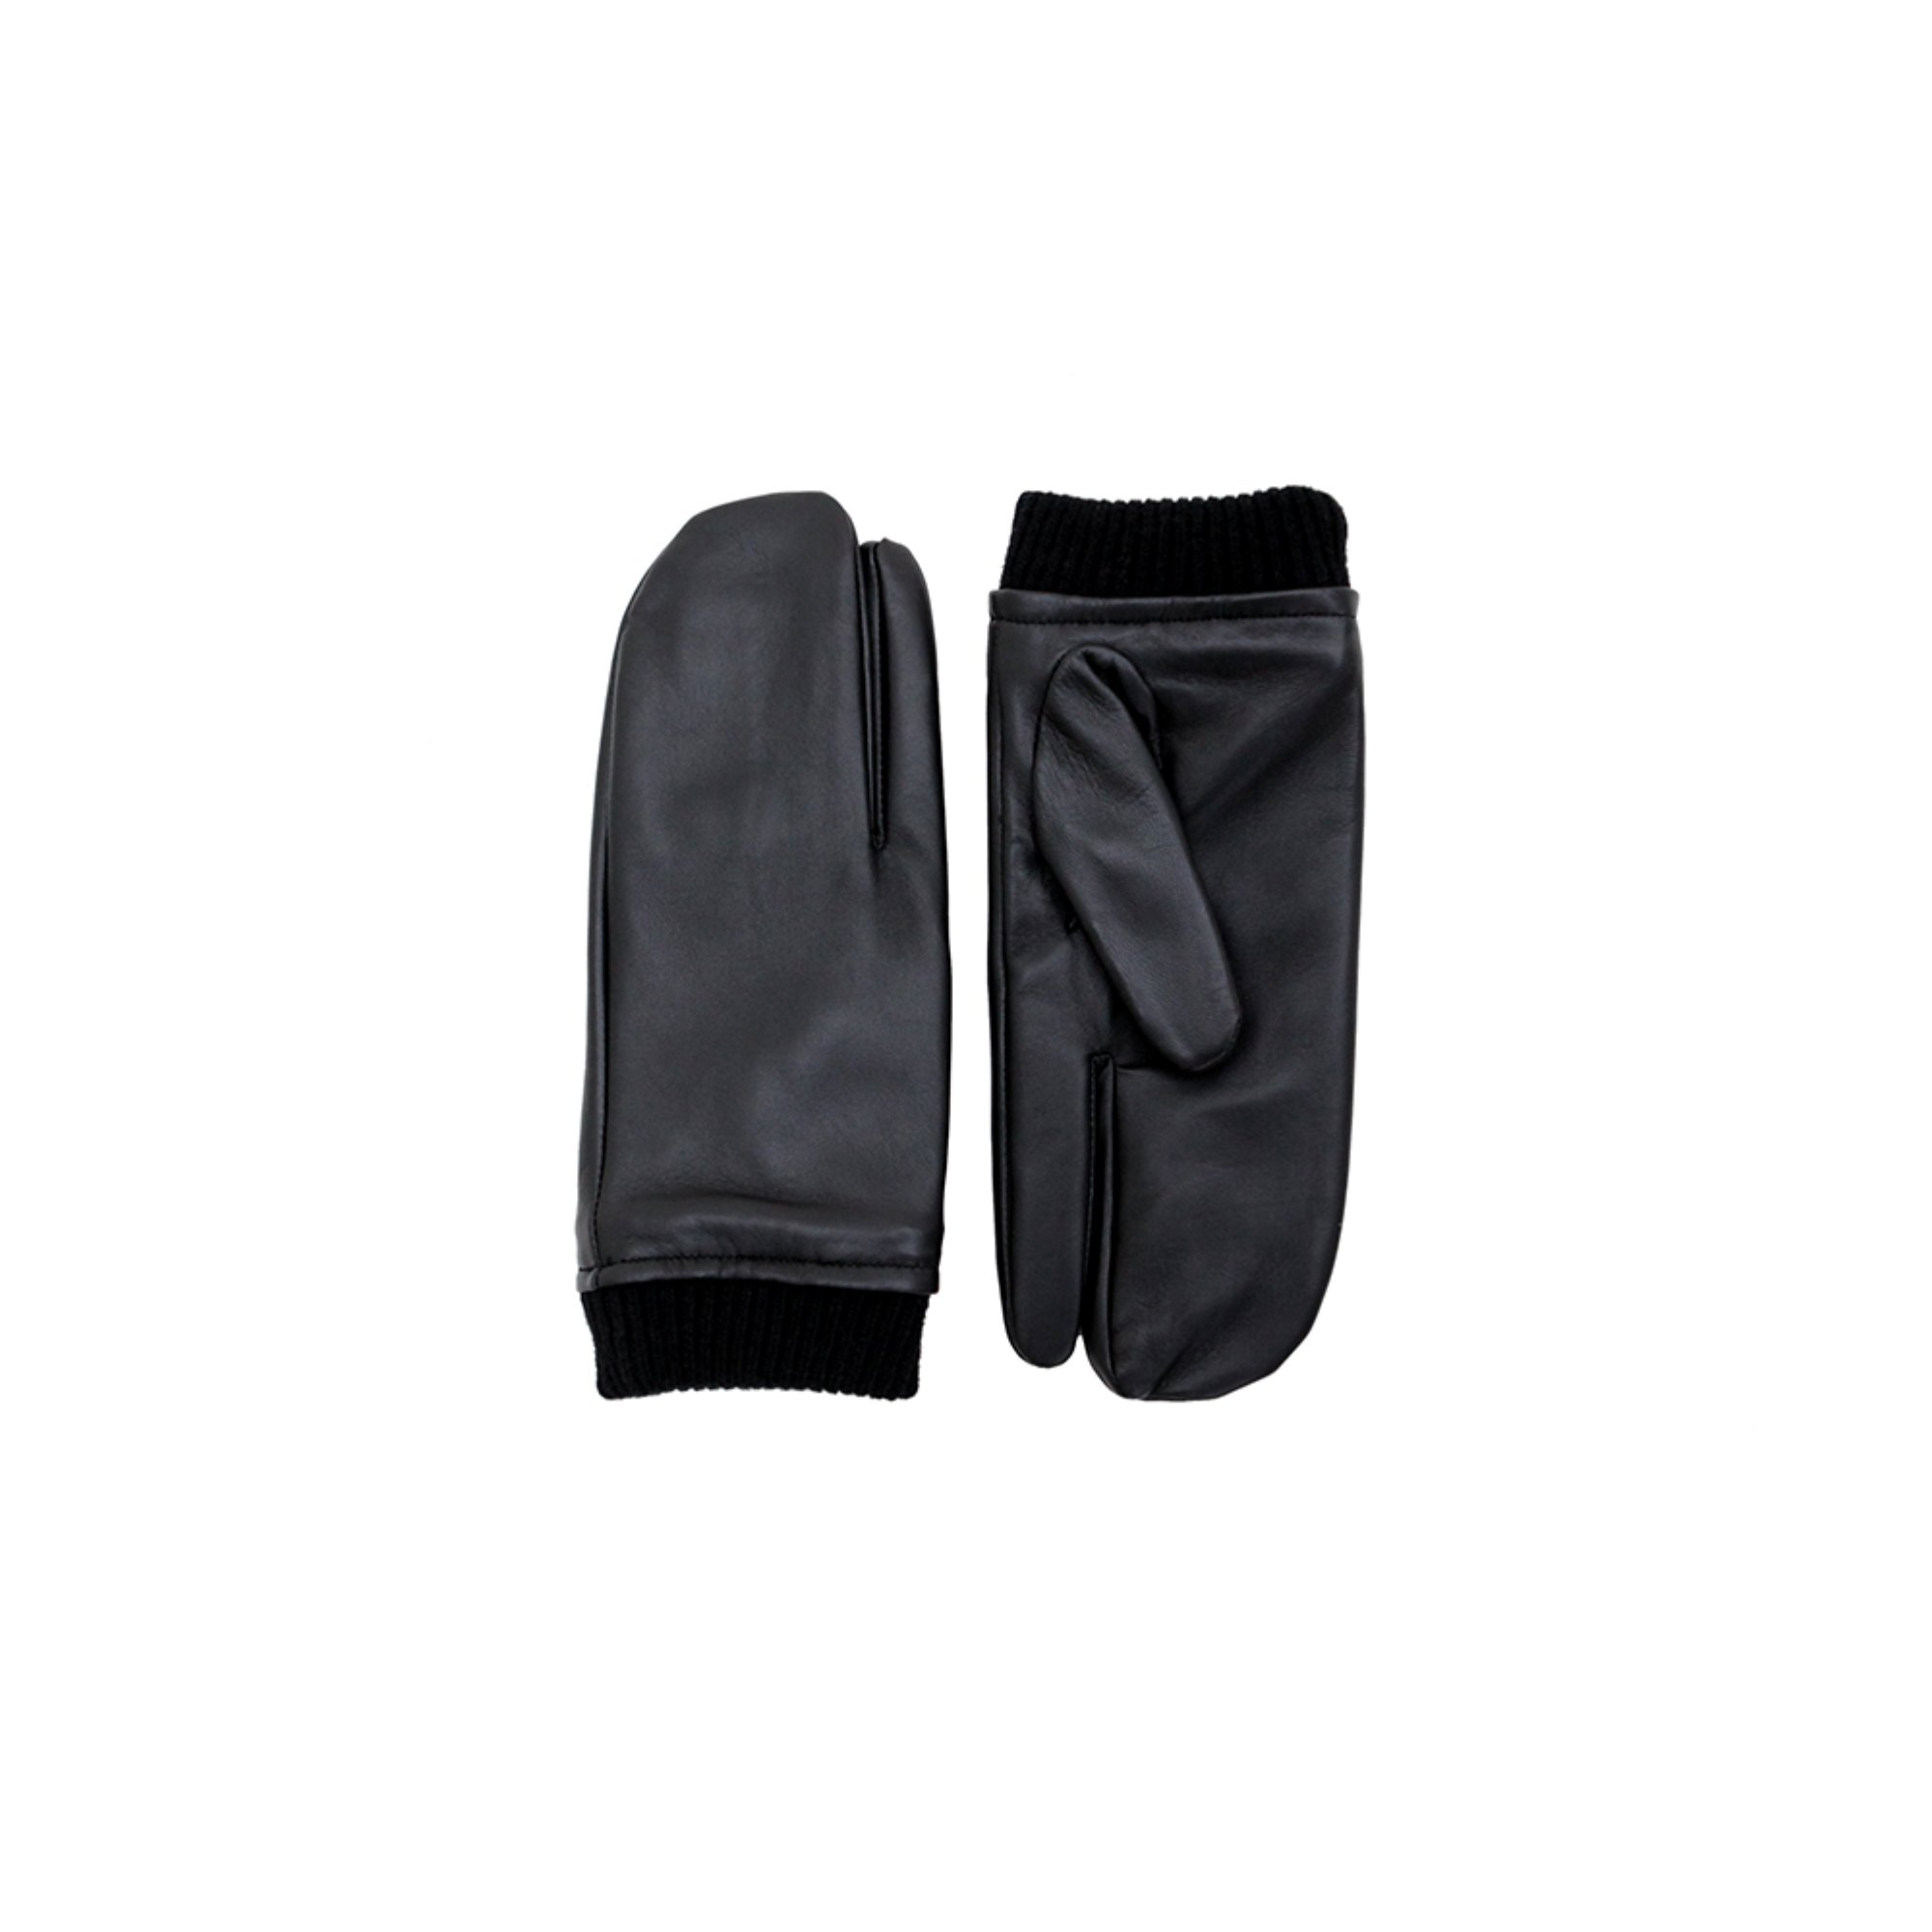 [DISCONTINUE] LEATHER TIMI GLOVES - BLACK